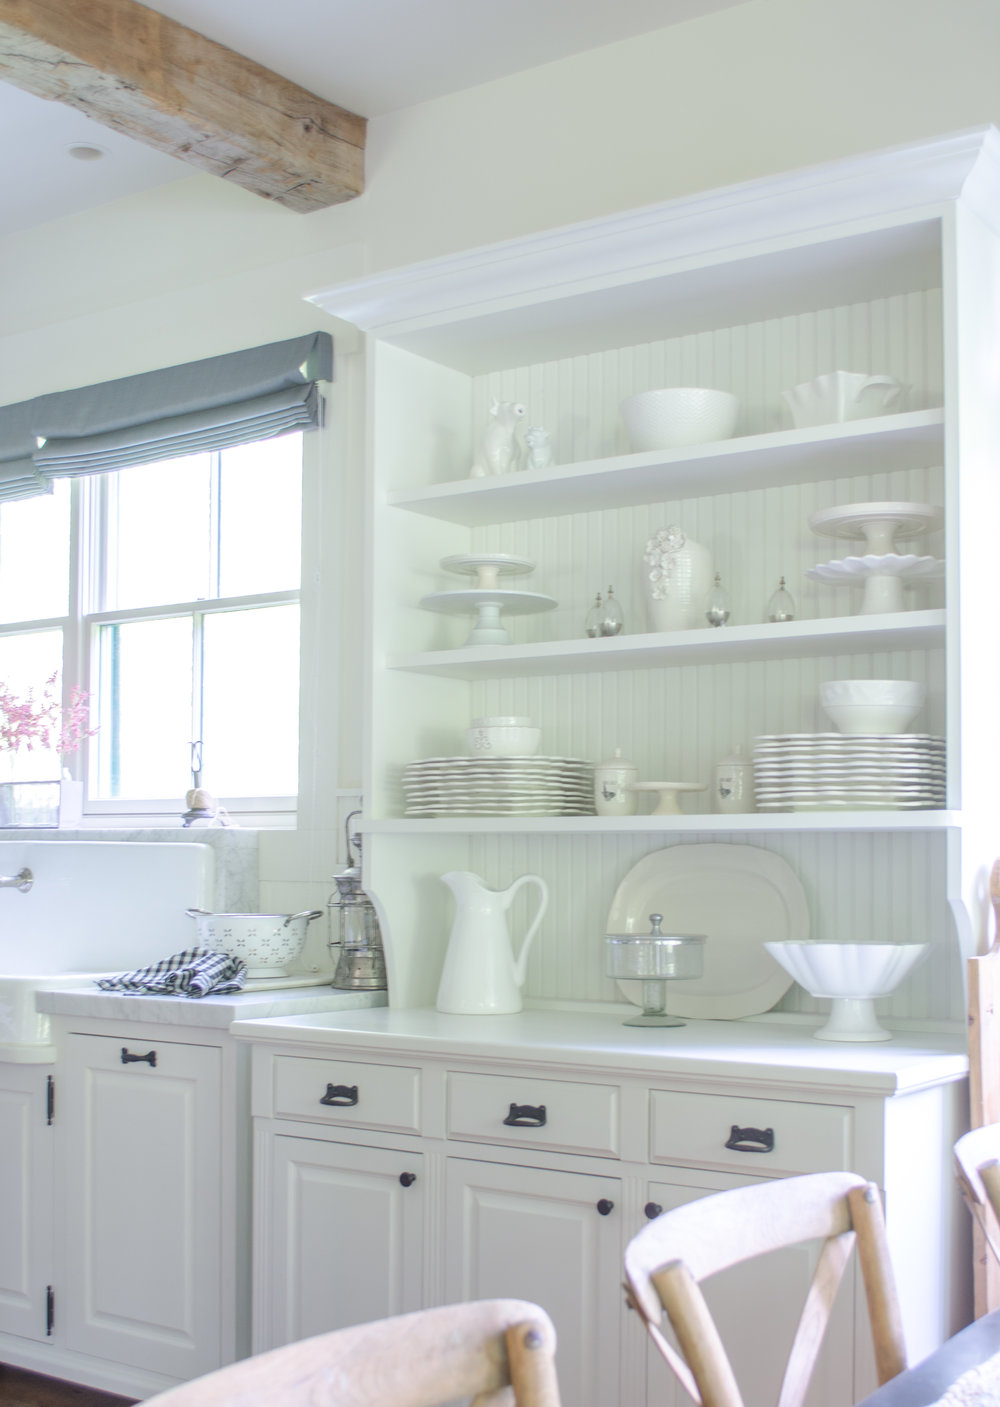 Best-White-Dishes-Country-Kitchen-2 copy 2.jpg